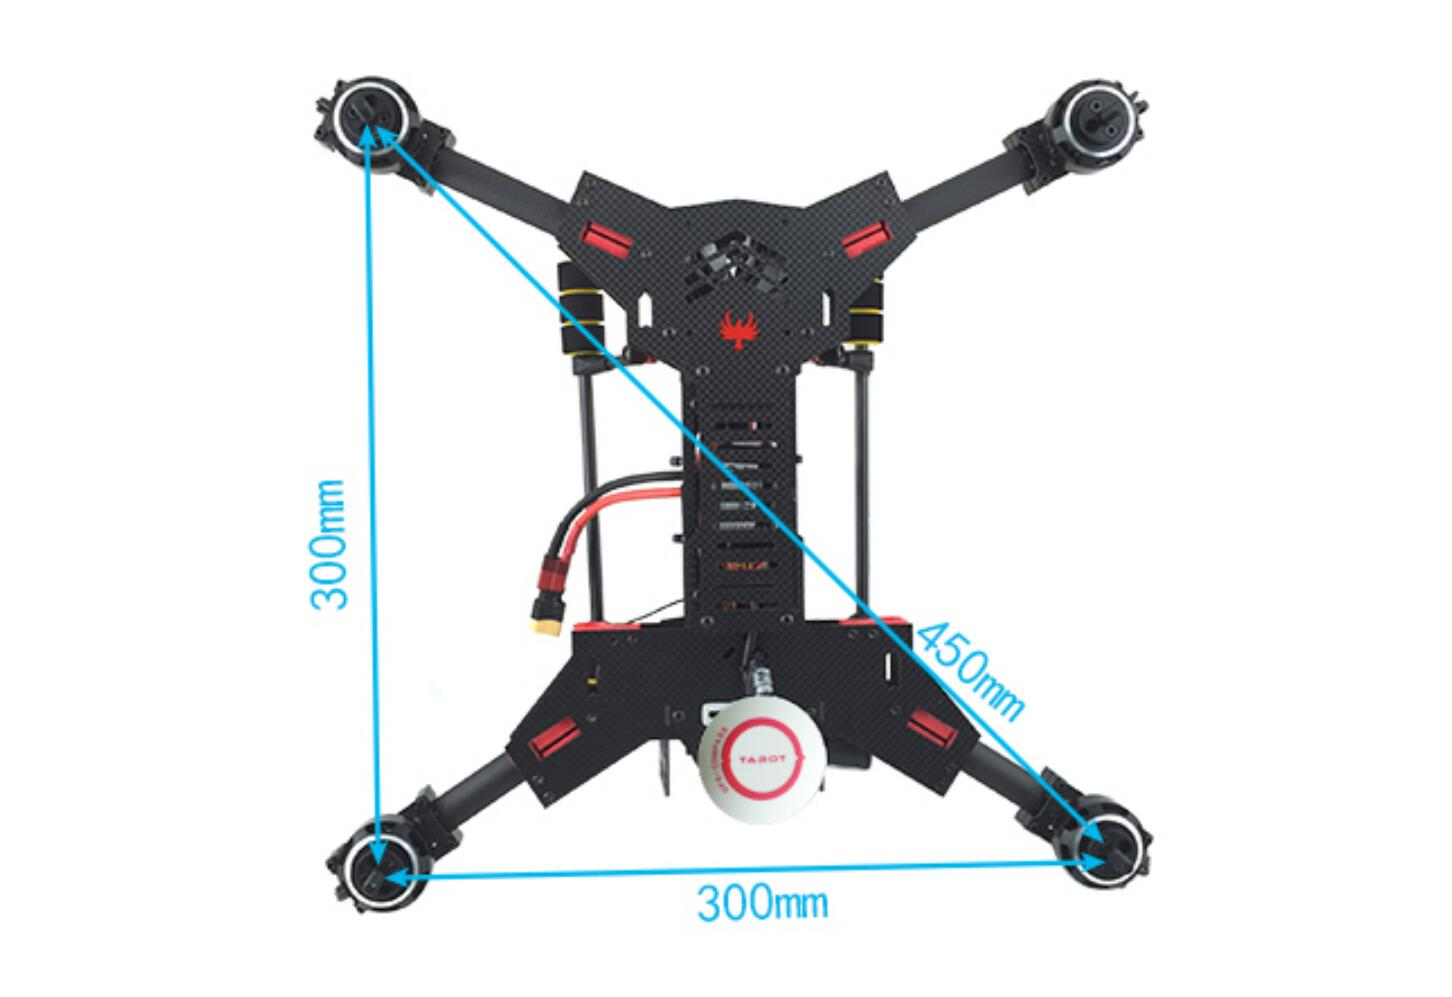 450mm Quad Carbon Fiber Drone Frame Kit ,H4-Horizontal Folding FPV Racing UAV Frame,H450 Drone Frame Kit with Landing Gear,Multi-rotor UAV Frame Carbon Fiber Quadcopter Frame kit,UAV frame kit,JMRRC drone